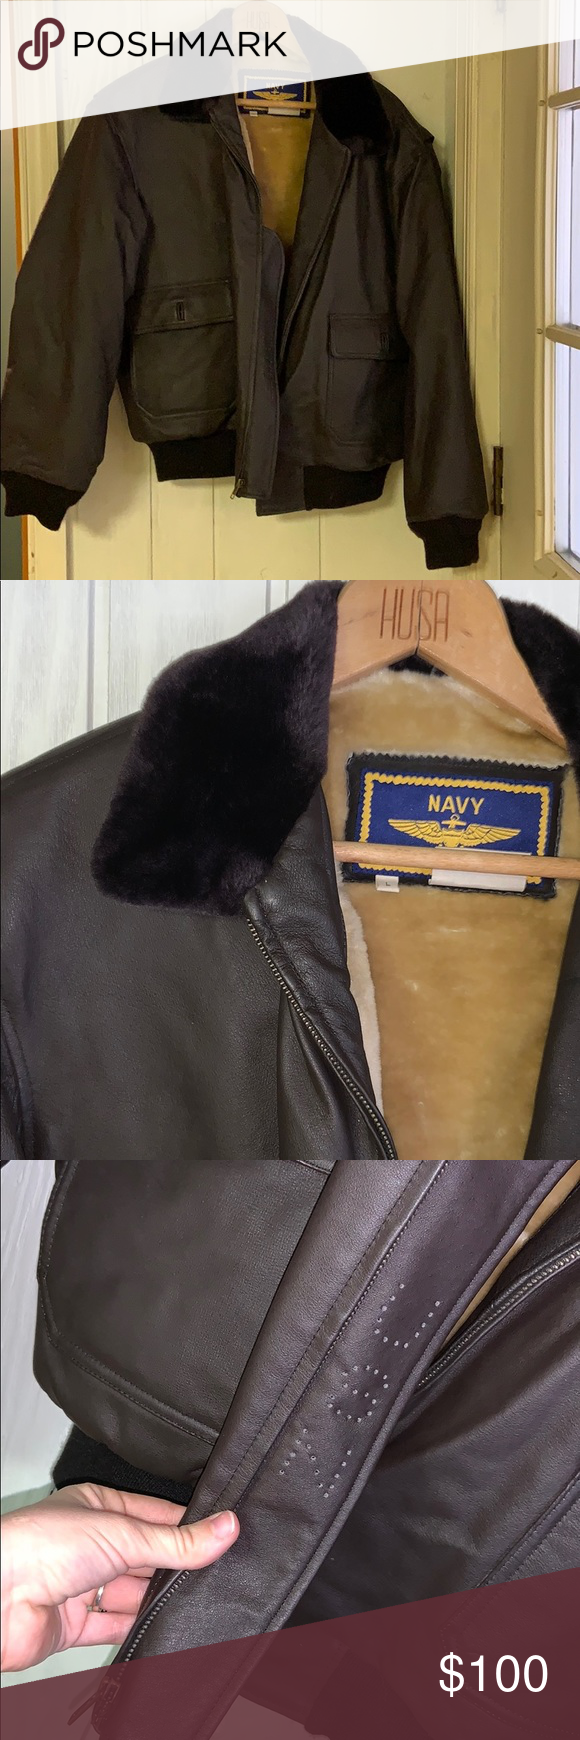 Navy Airborne Leathers Leather Jacket Excellent Used Condition Brown Leather Jacket With Lining Navy Airbo Leather Jacket Brown Leather Jacket Jackets [ 1740 x 580 Pixel ]